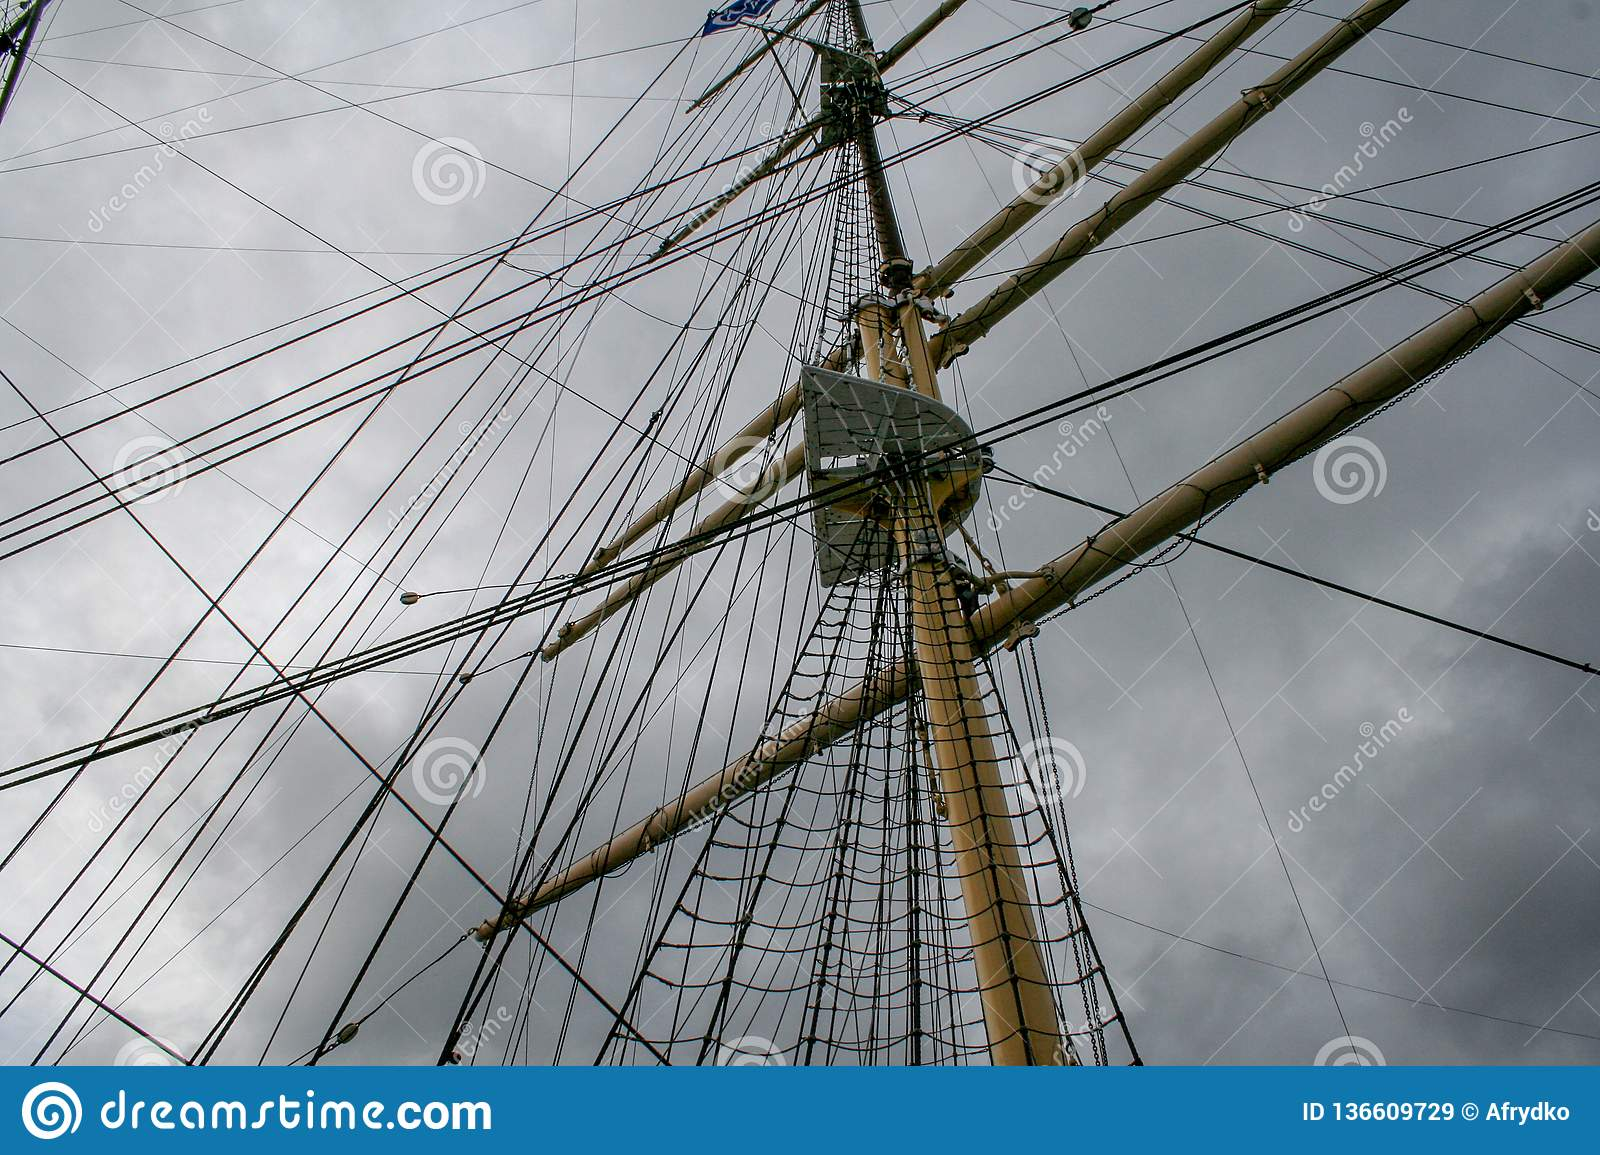 Mast on the old ship